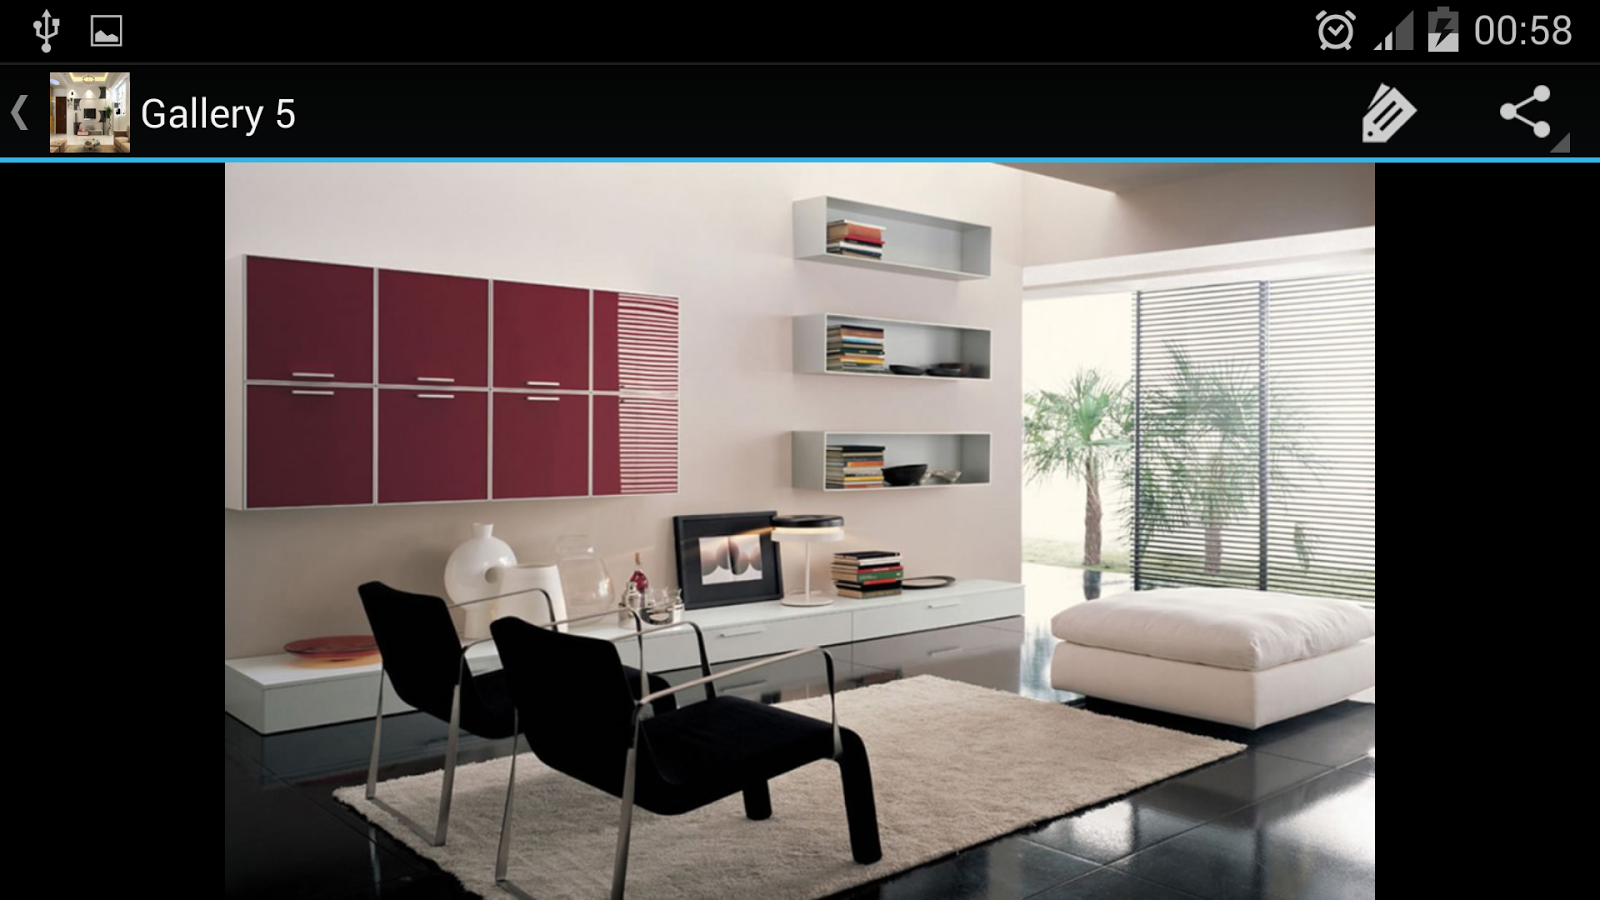 Living room decorating ideas android apps on google play for Room design game app